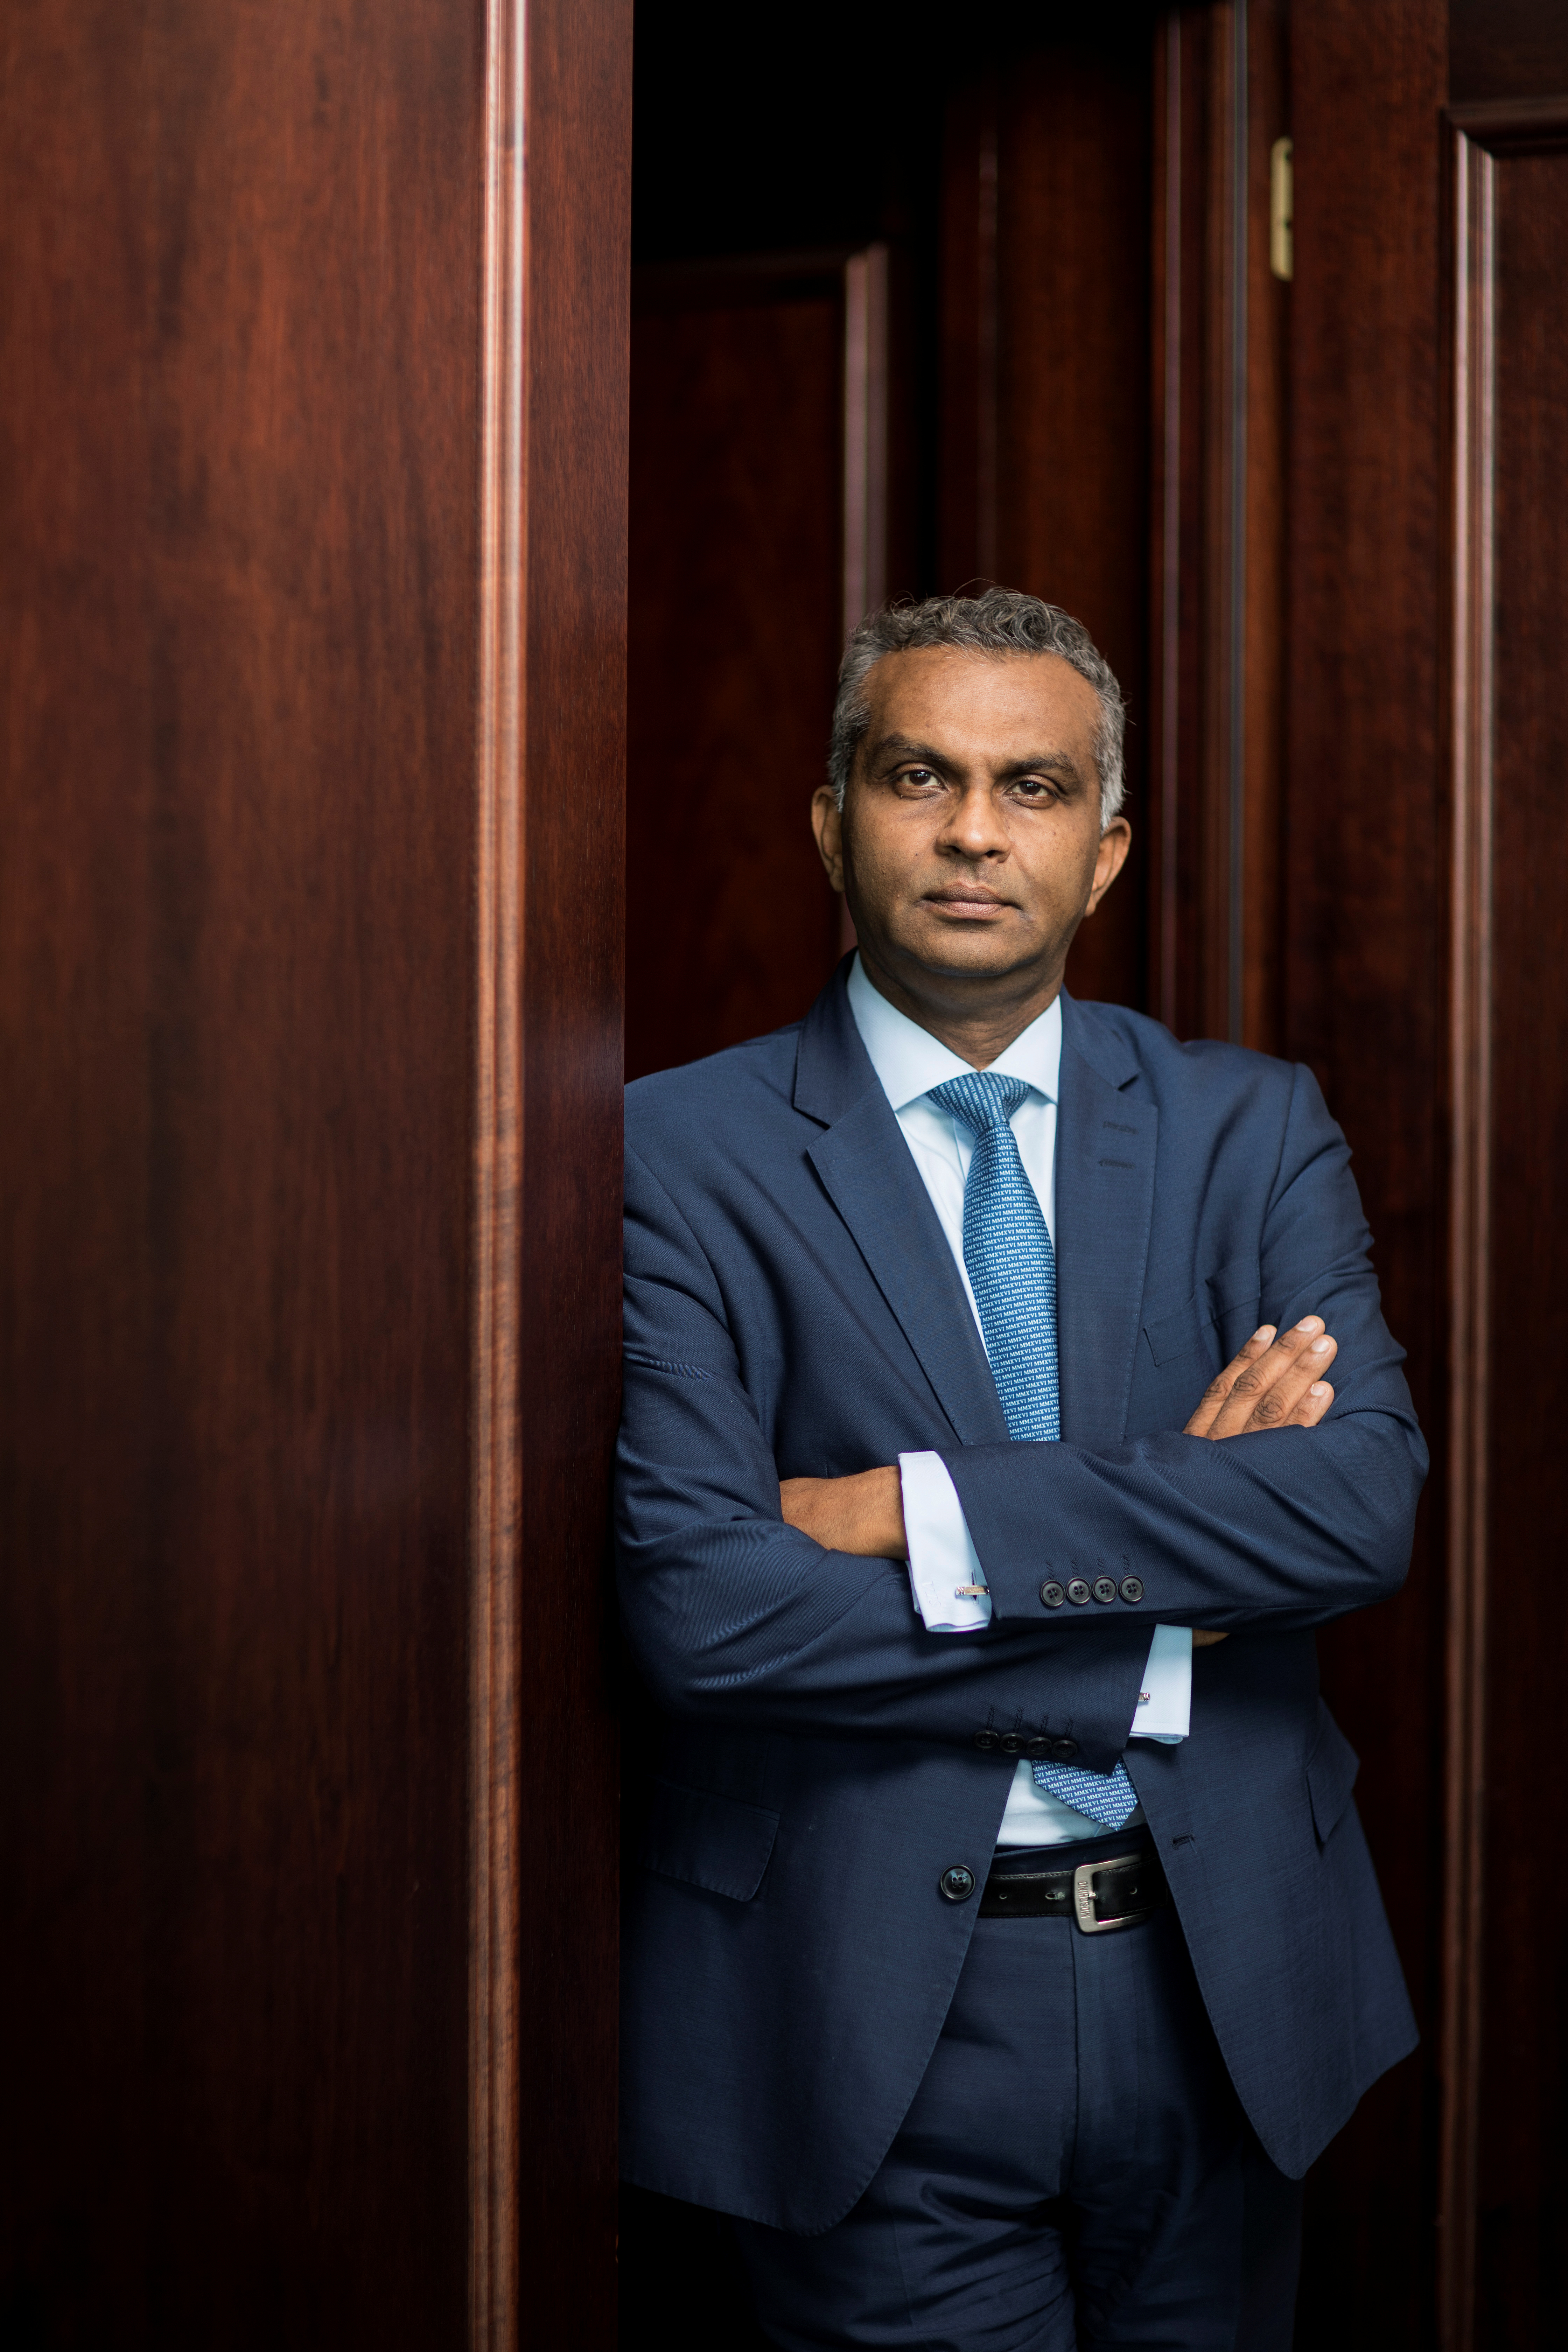 Viswas Raghavan, Chief Executive Officer for J.P. Morgan in Europe, Middle East and Africa, poses at the companies offices in this undated photo taken in London, Britain. JPMorgan/Handout via Reuters